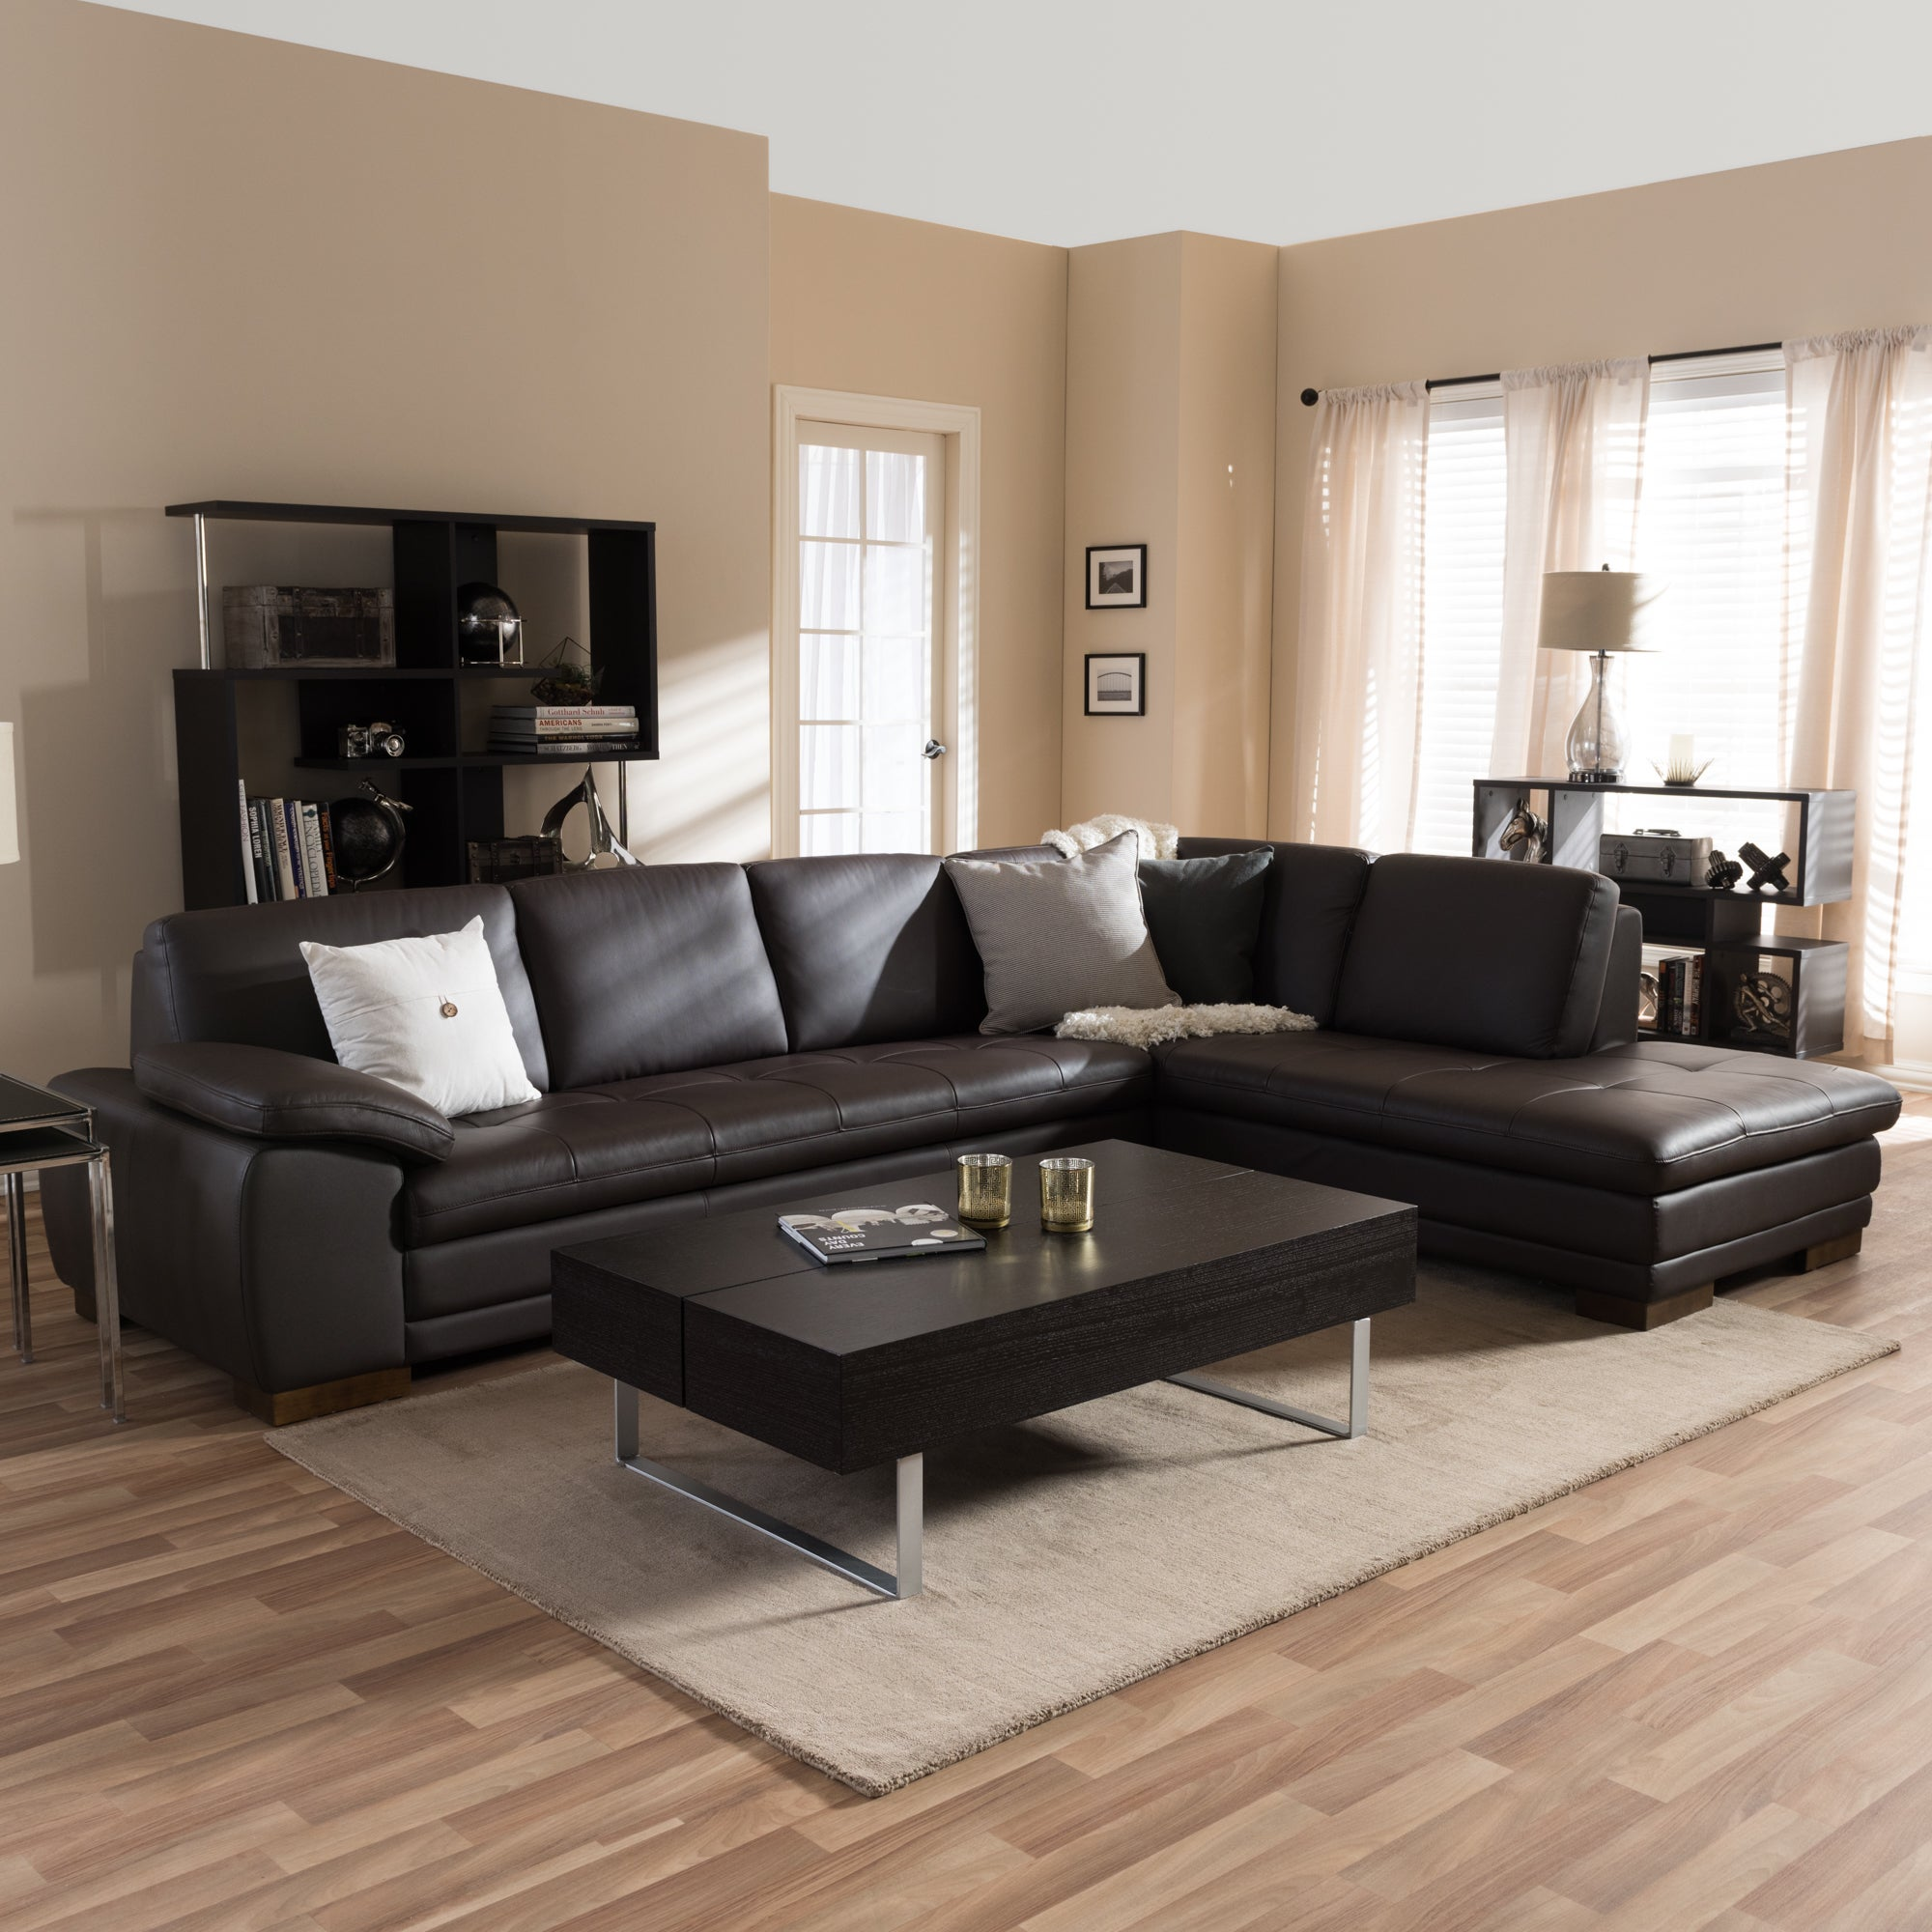 Details about Diana Dark Brown Leather Sectional Sofa Set Brown